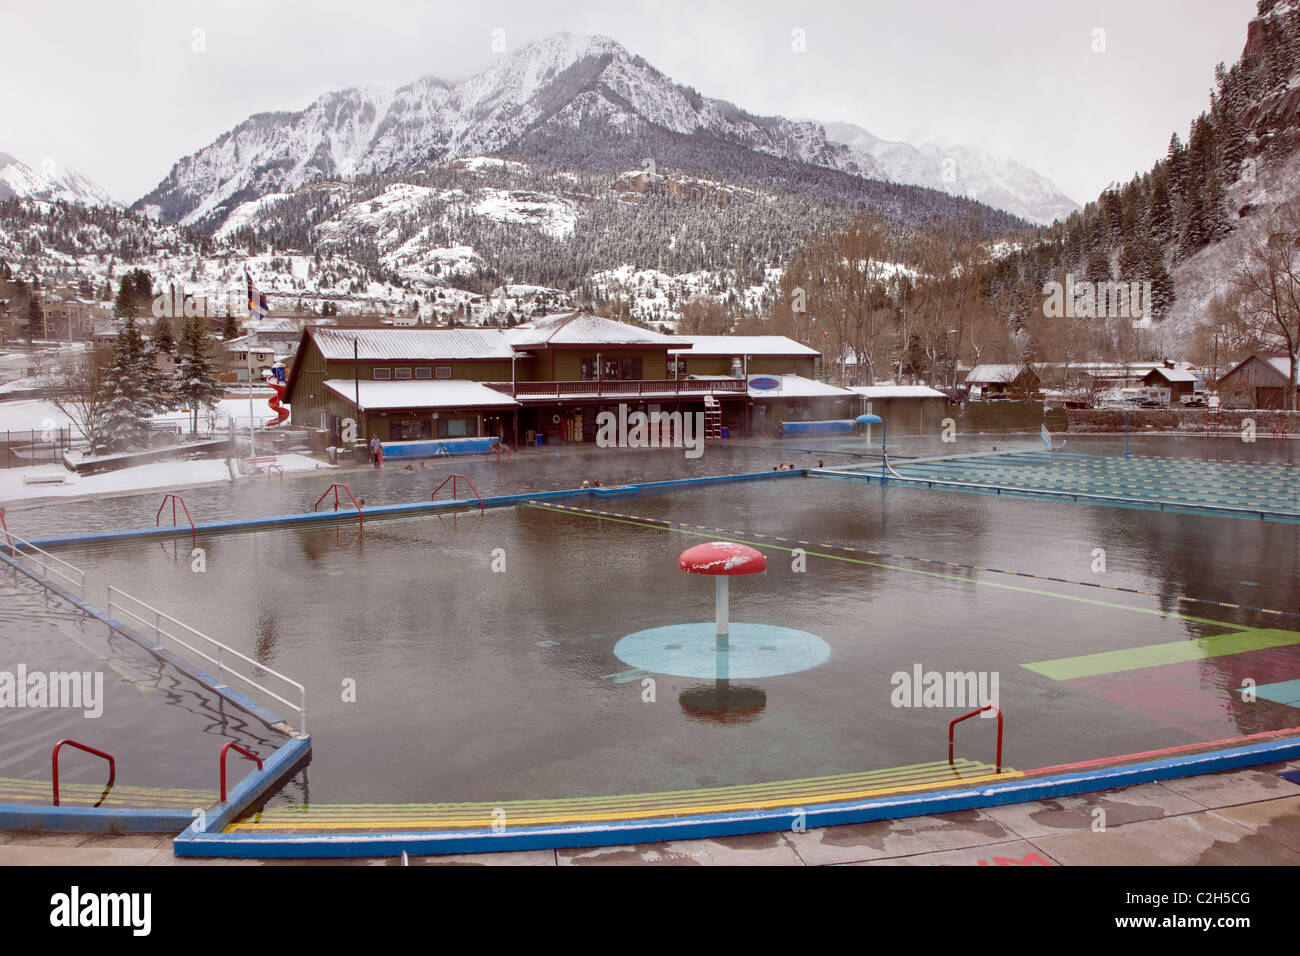 Winter view of Ouray Hot Springs Pool, Ouray, Colorado, USA - Stock Image